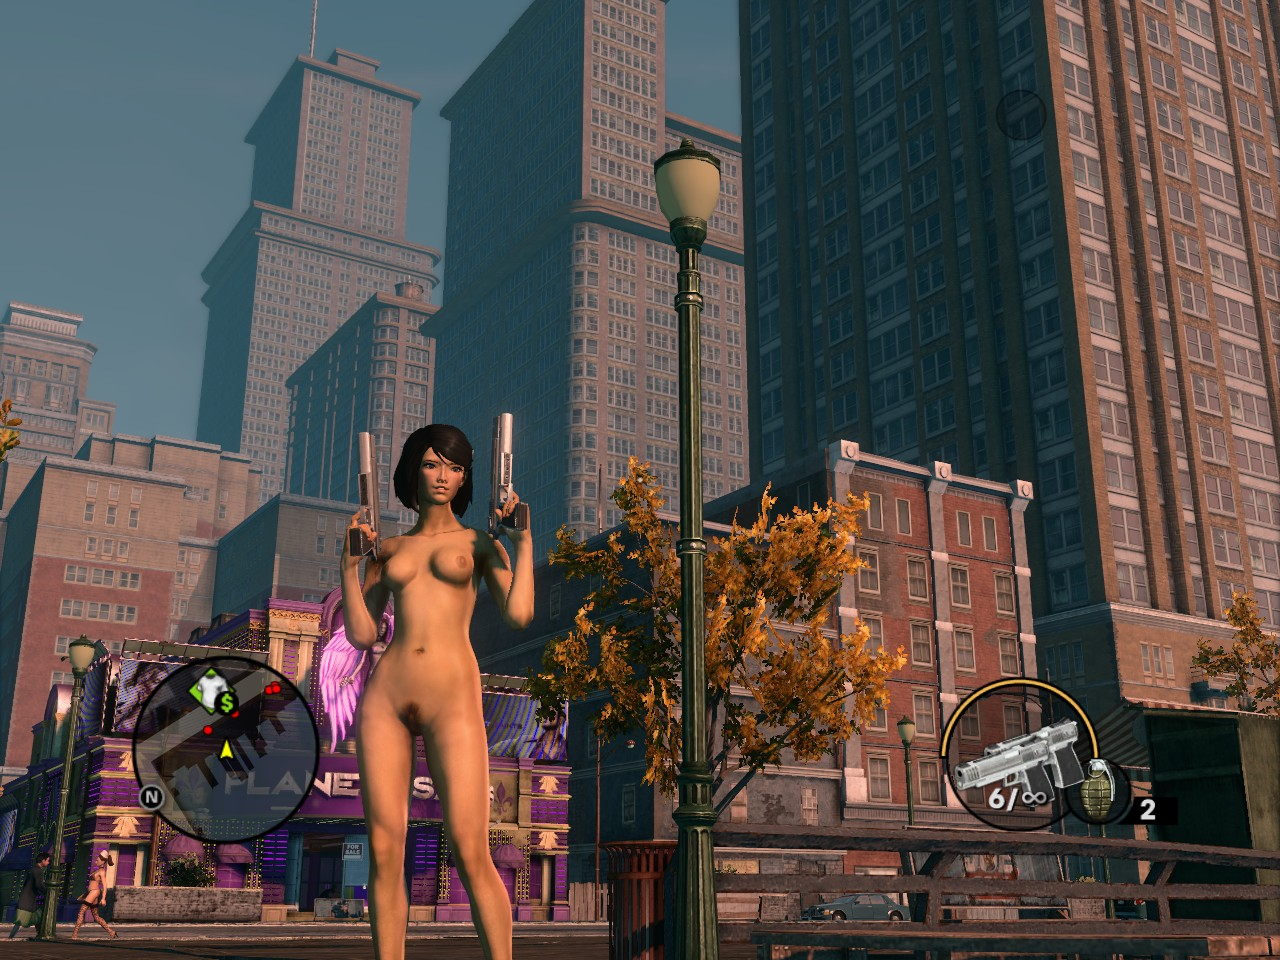 Saints row 4 female nude mod download naked download